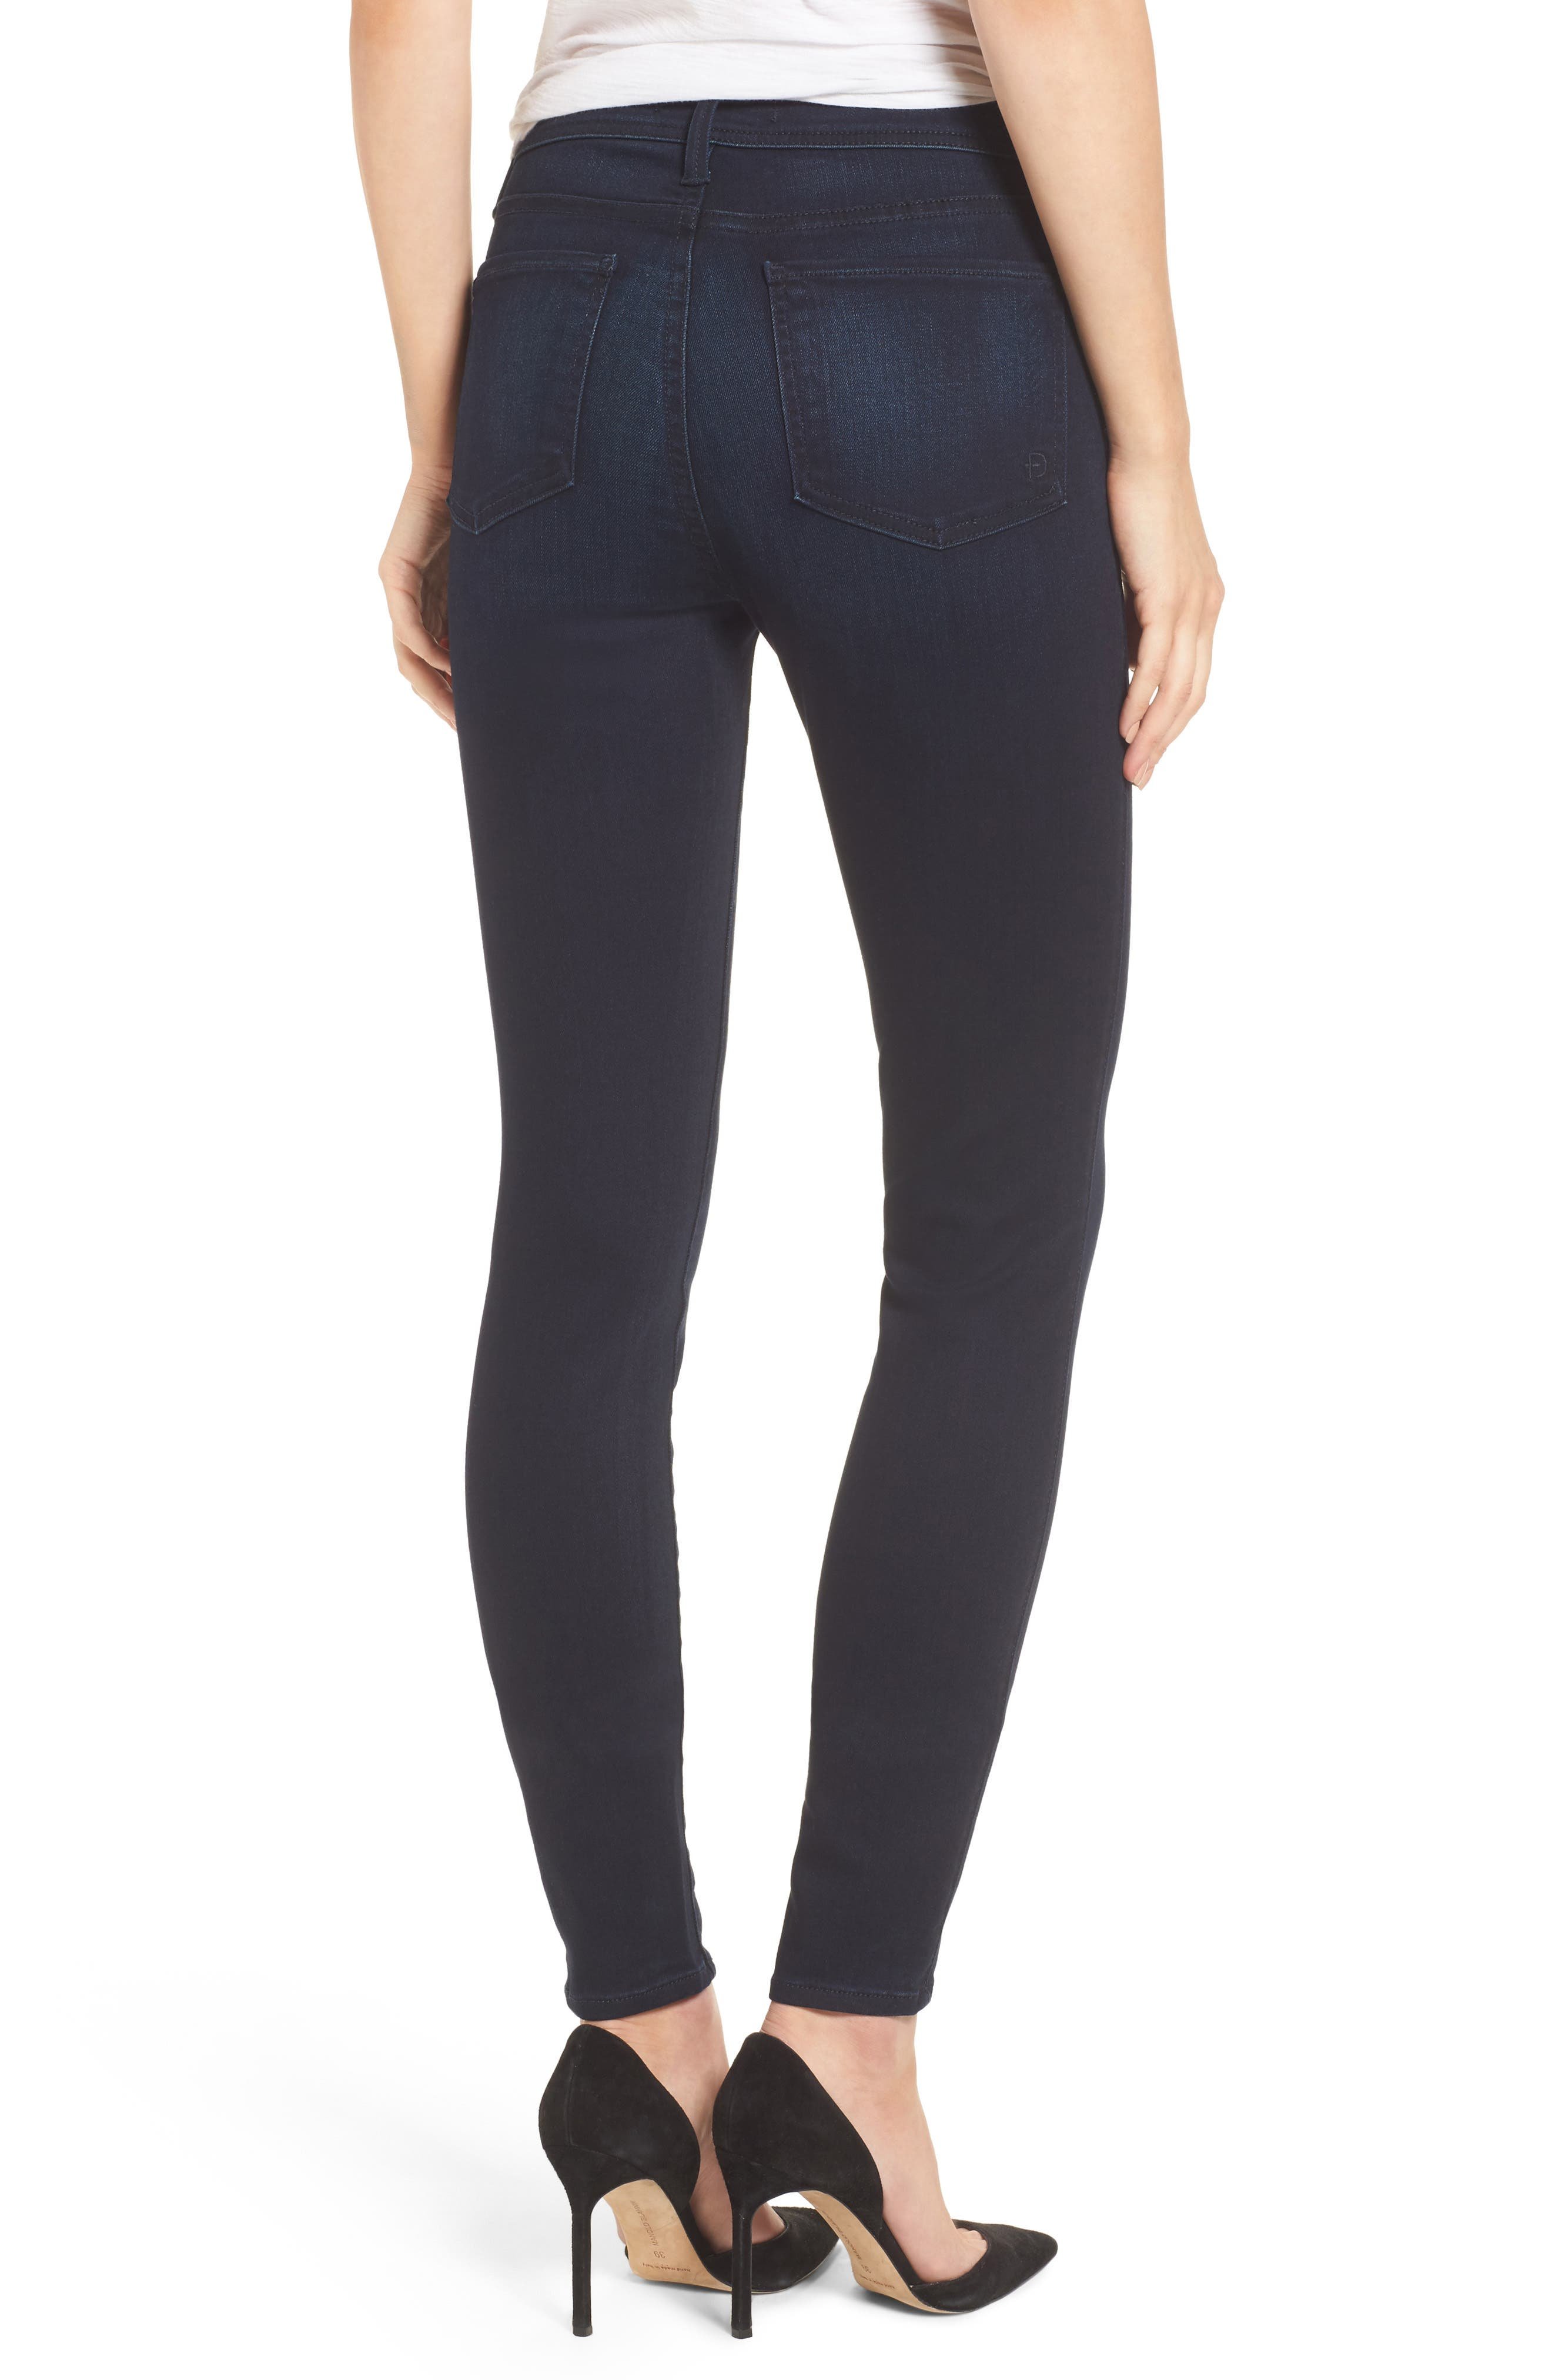 Fidelity Jeans Belvedere Skinny Jeans,                             Alternate thumbnail 2, color,                             Sapphire